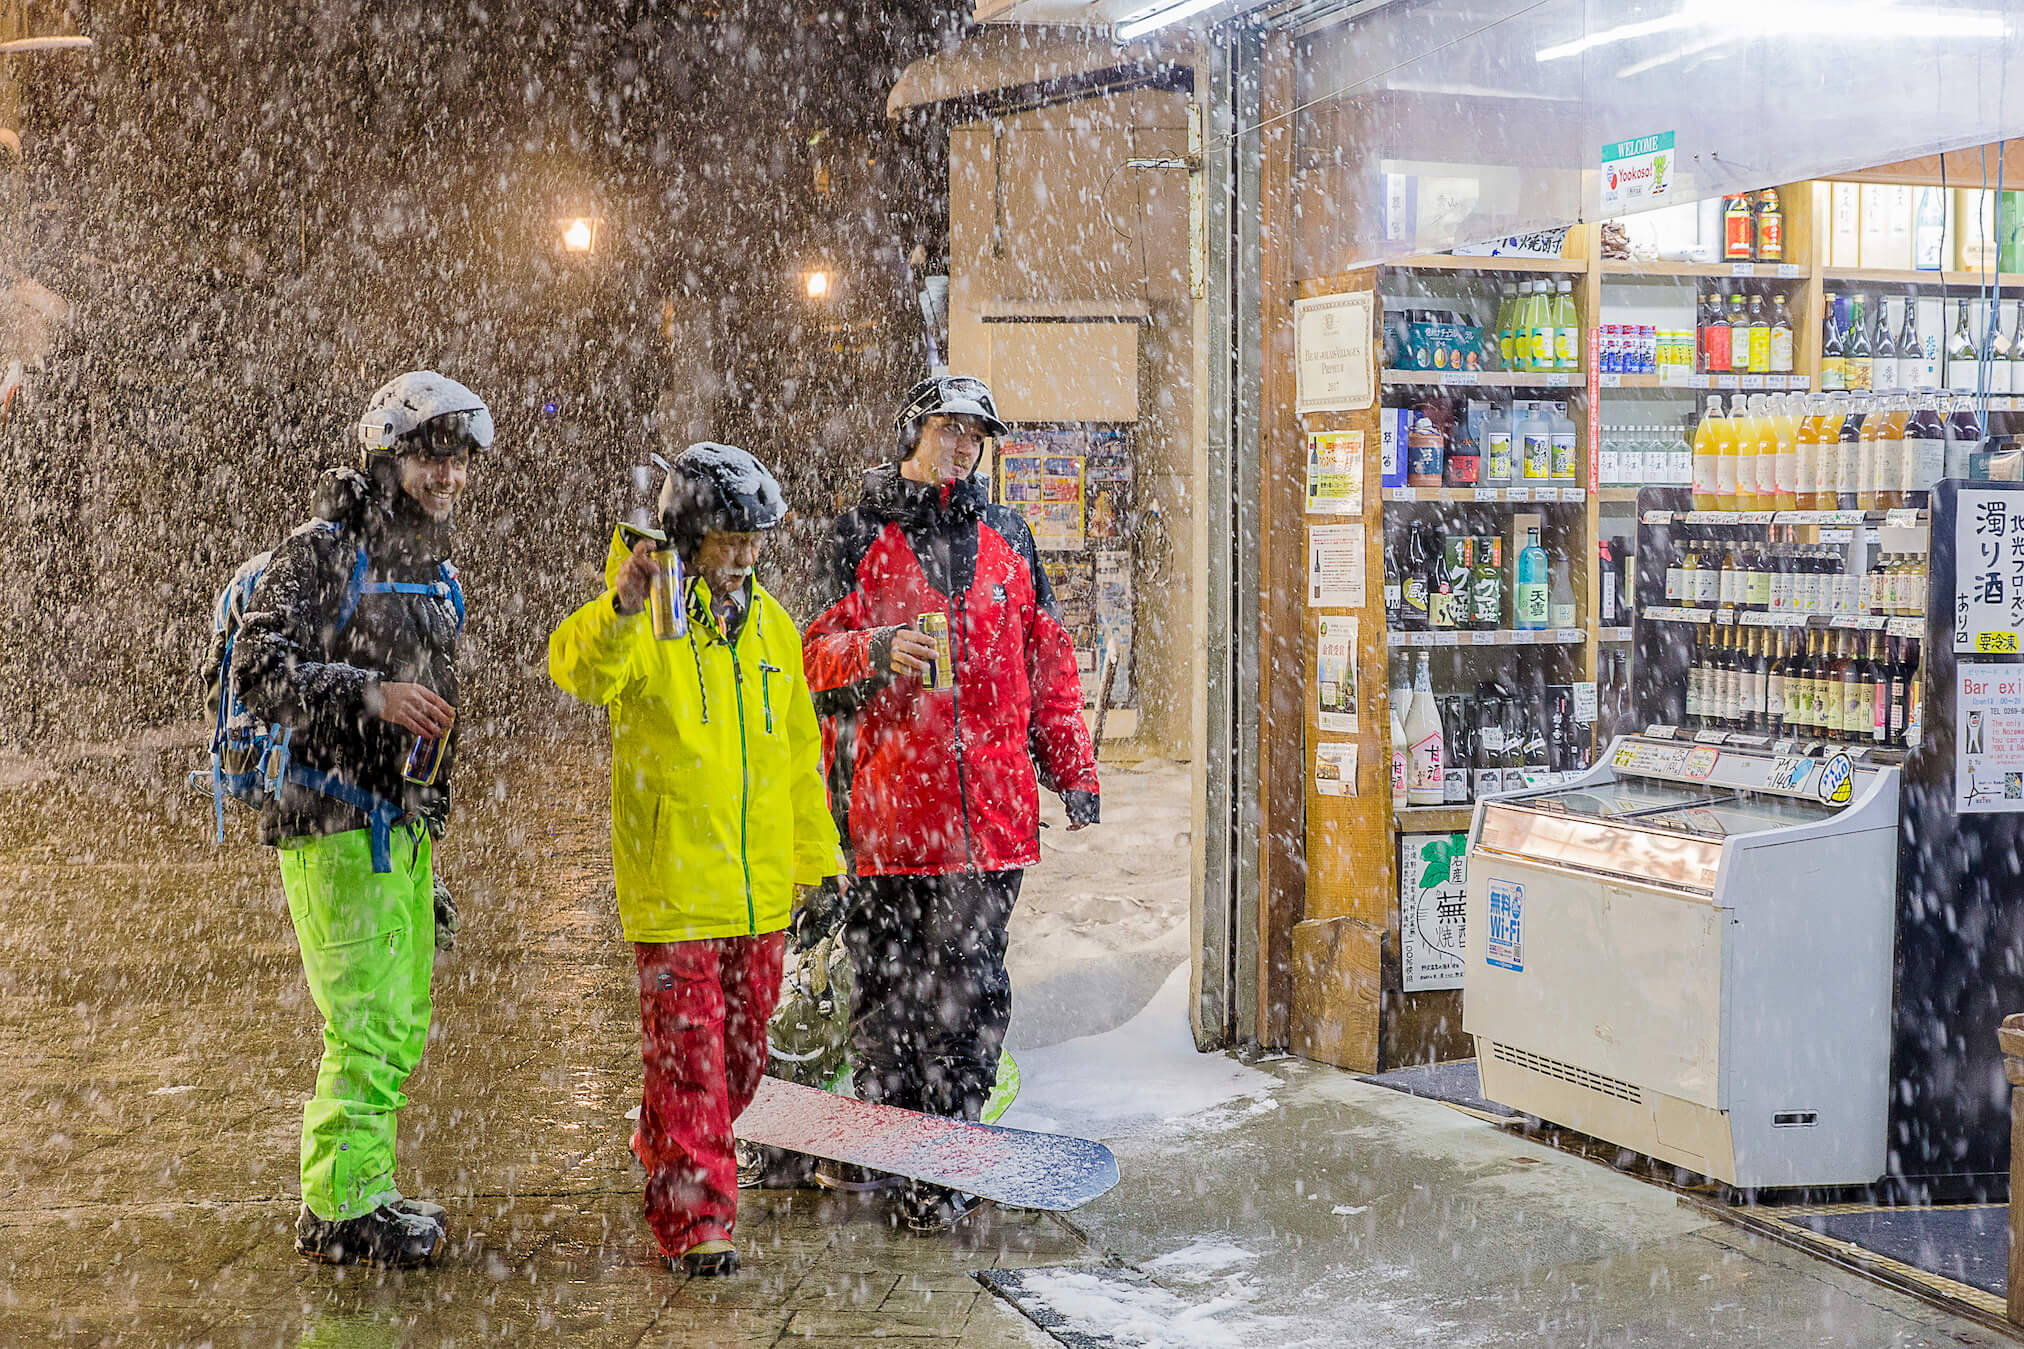 Apres Ski beers with Nozawa local during Powder Culture Tour with First Tours